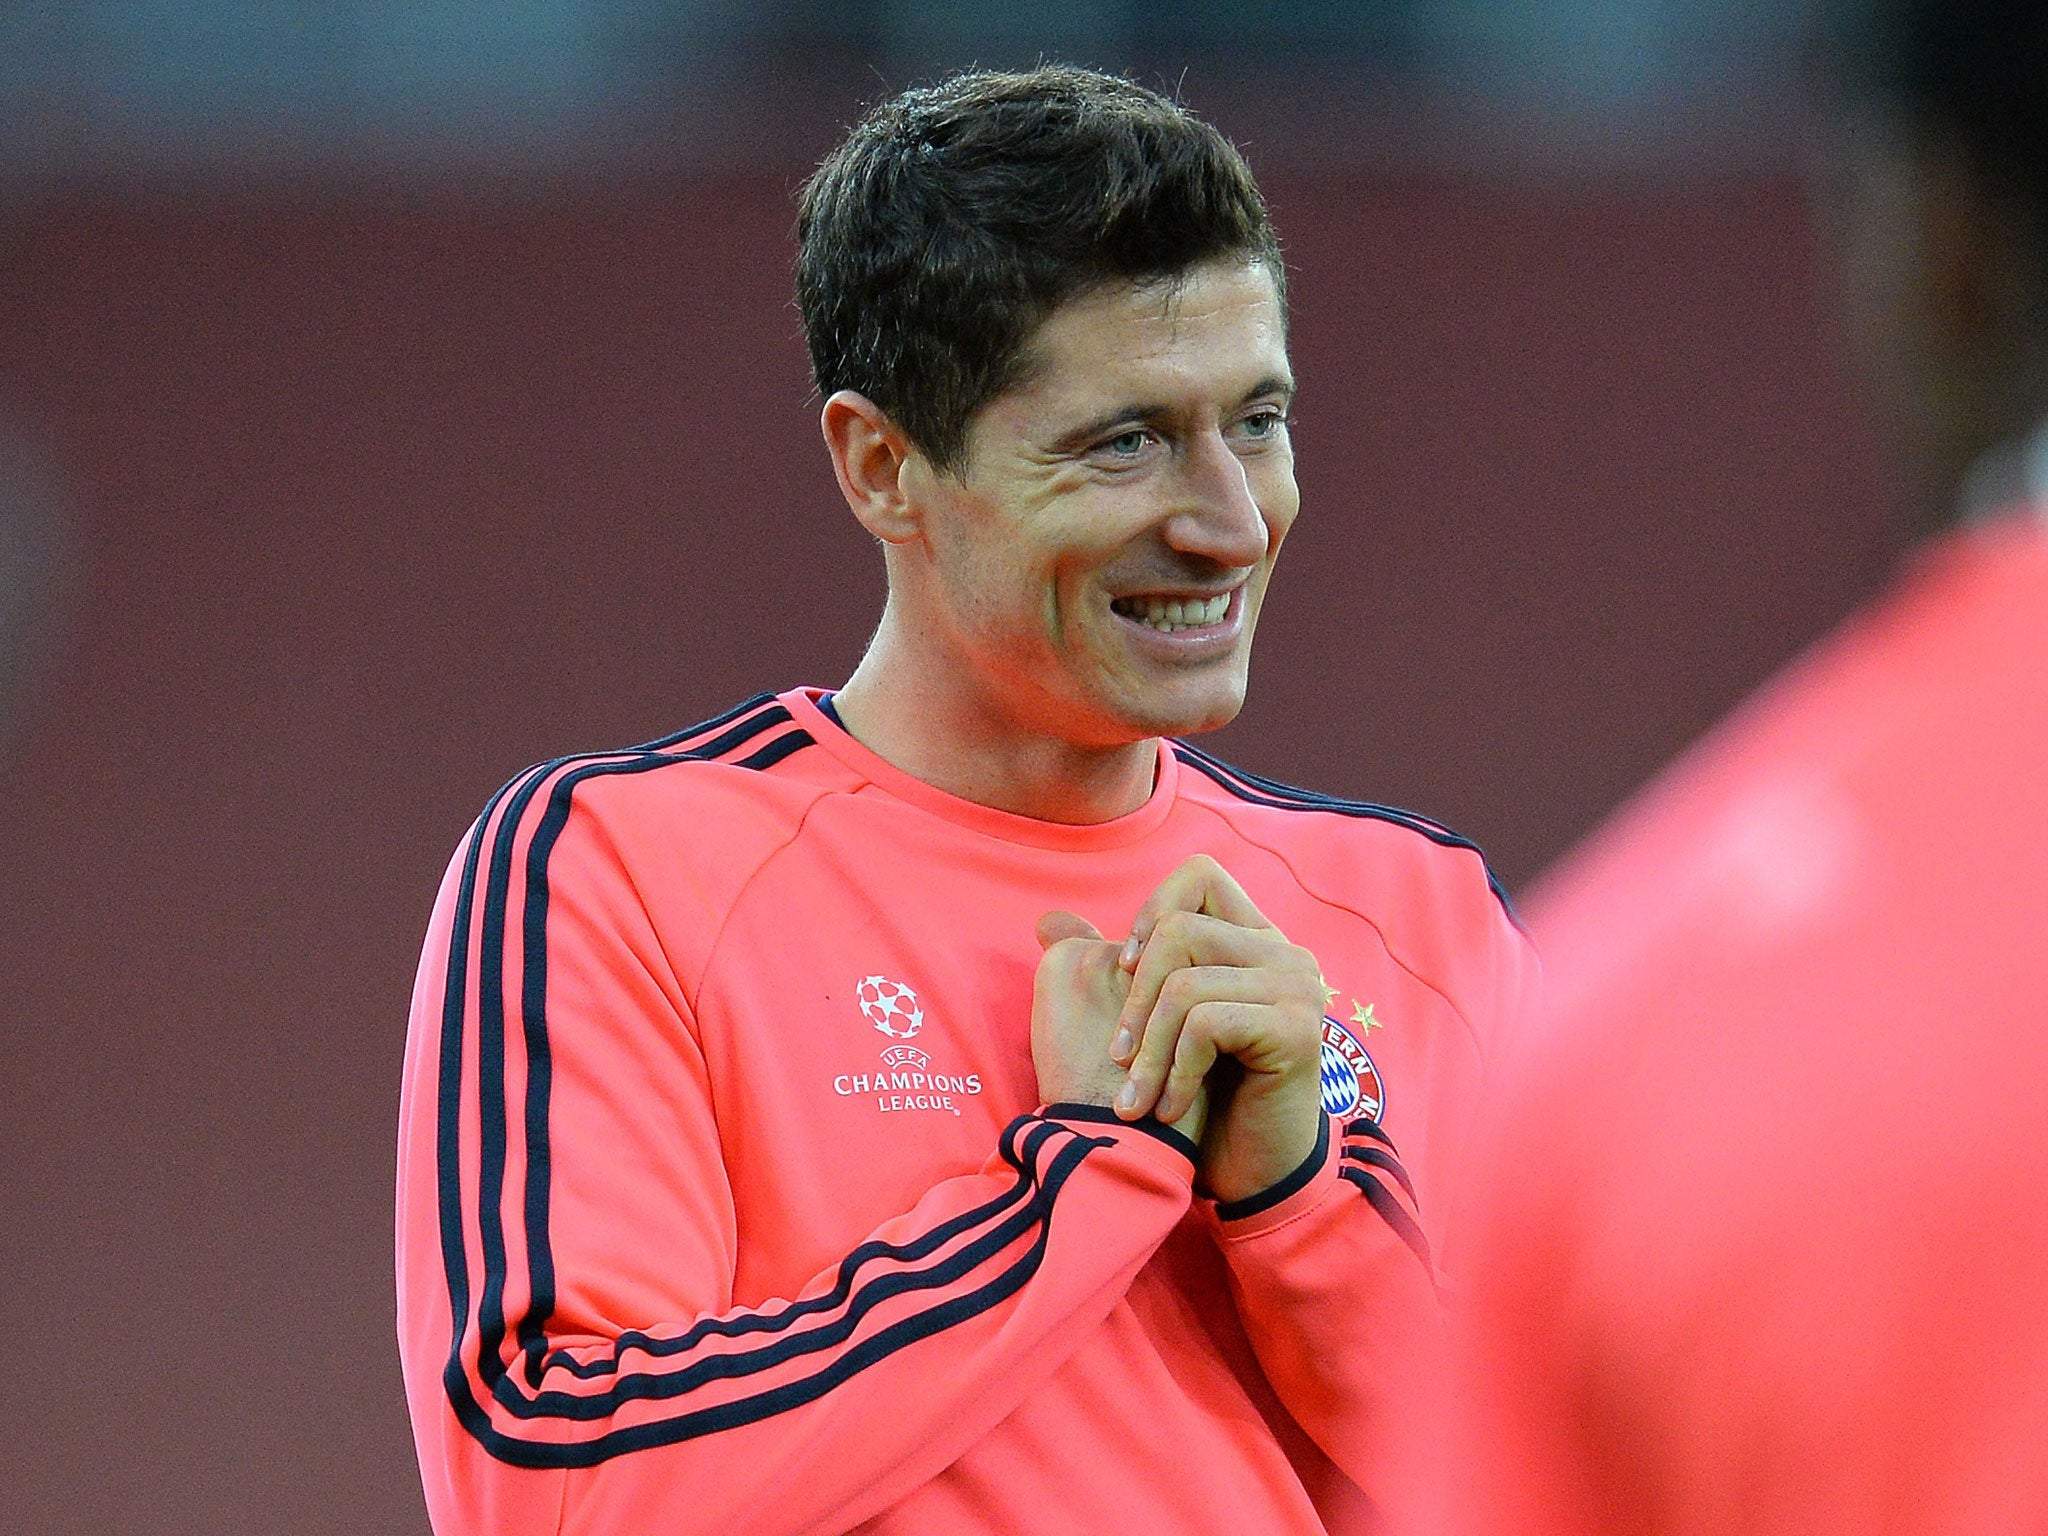 Robert Lewandowski Arsenal face the hottest striker in Europe